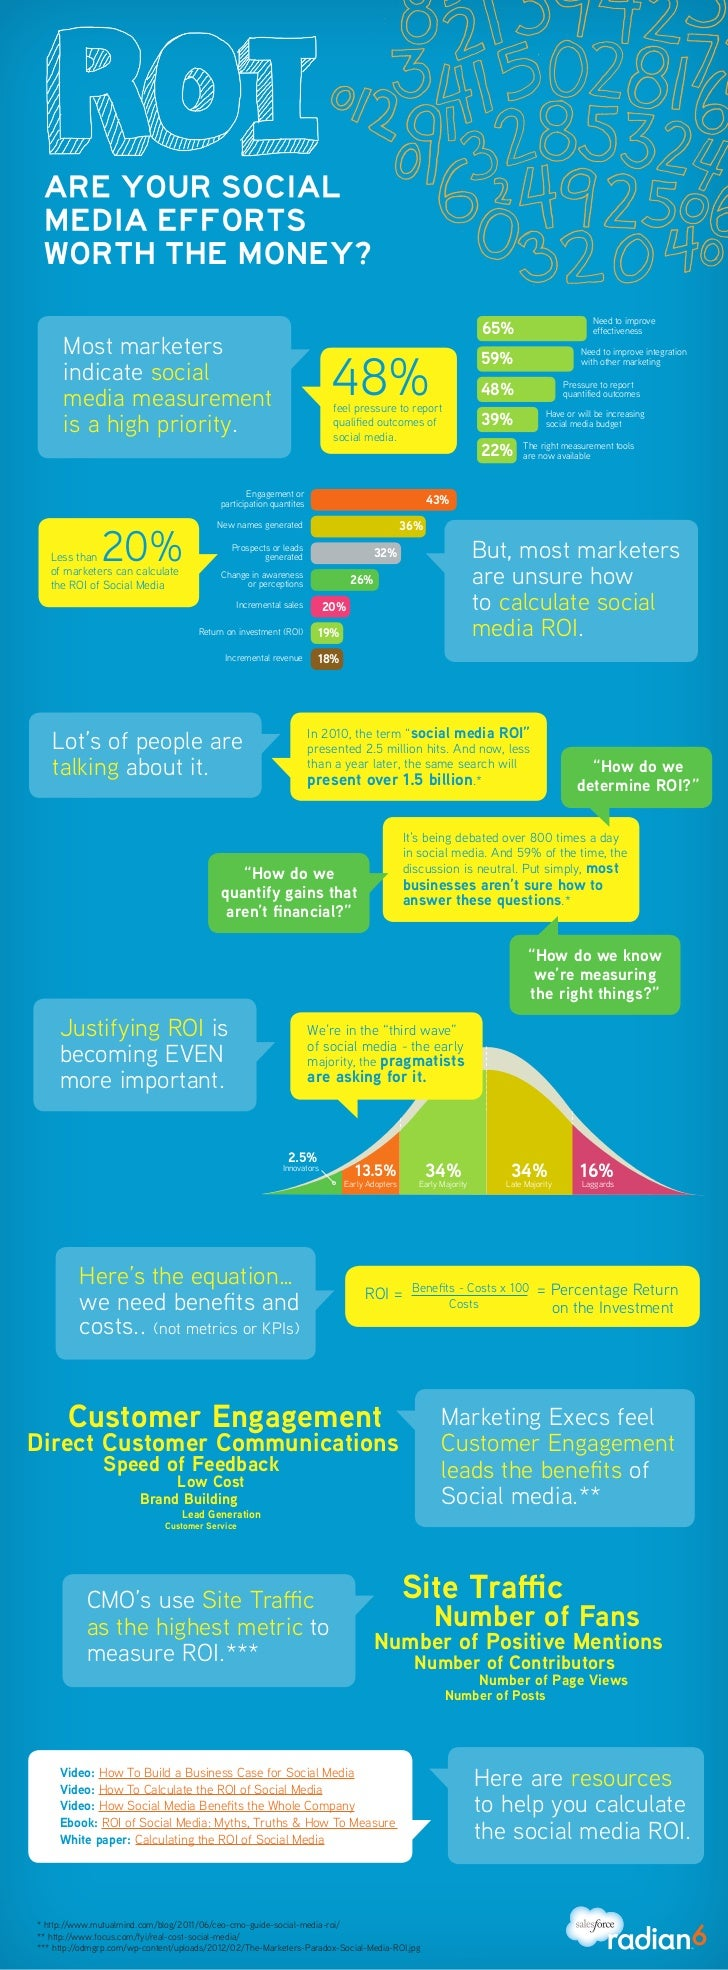 ROI Infographic: Are Your Social Media Efforts Worth the Money?